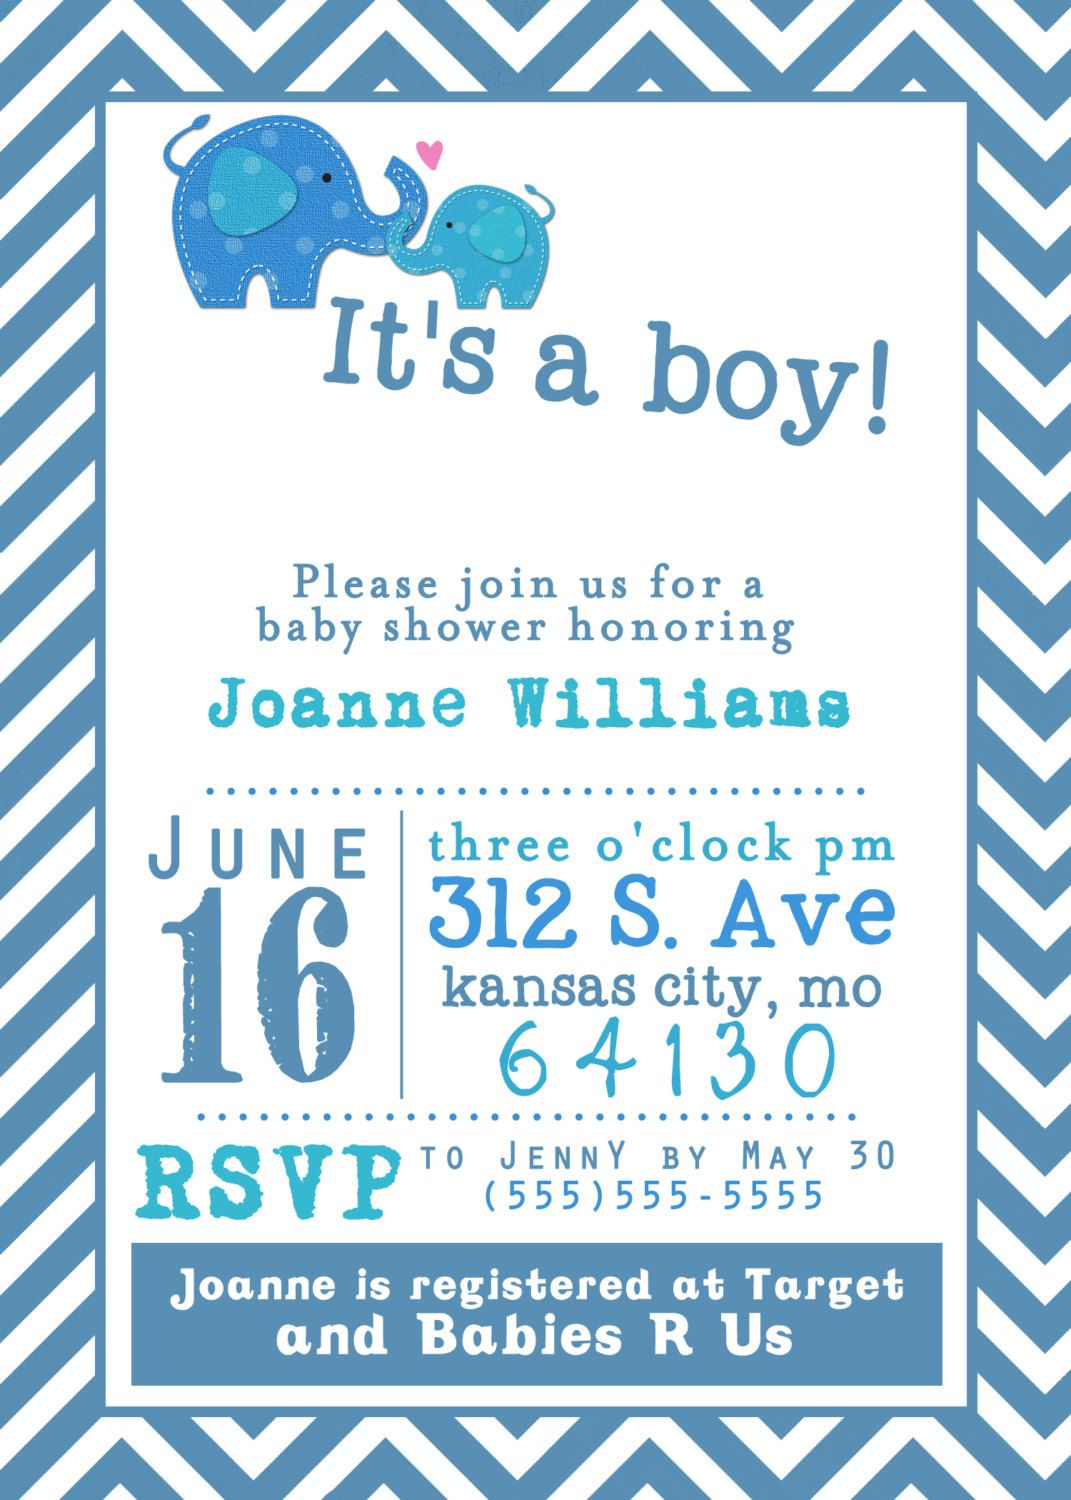 Resultado De Imagen Para Free Printable Baby Shower Invitations For Boys  Baby Shower Invitations Free Templates Online